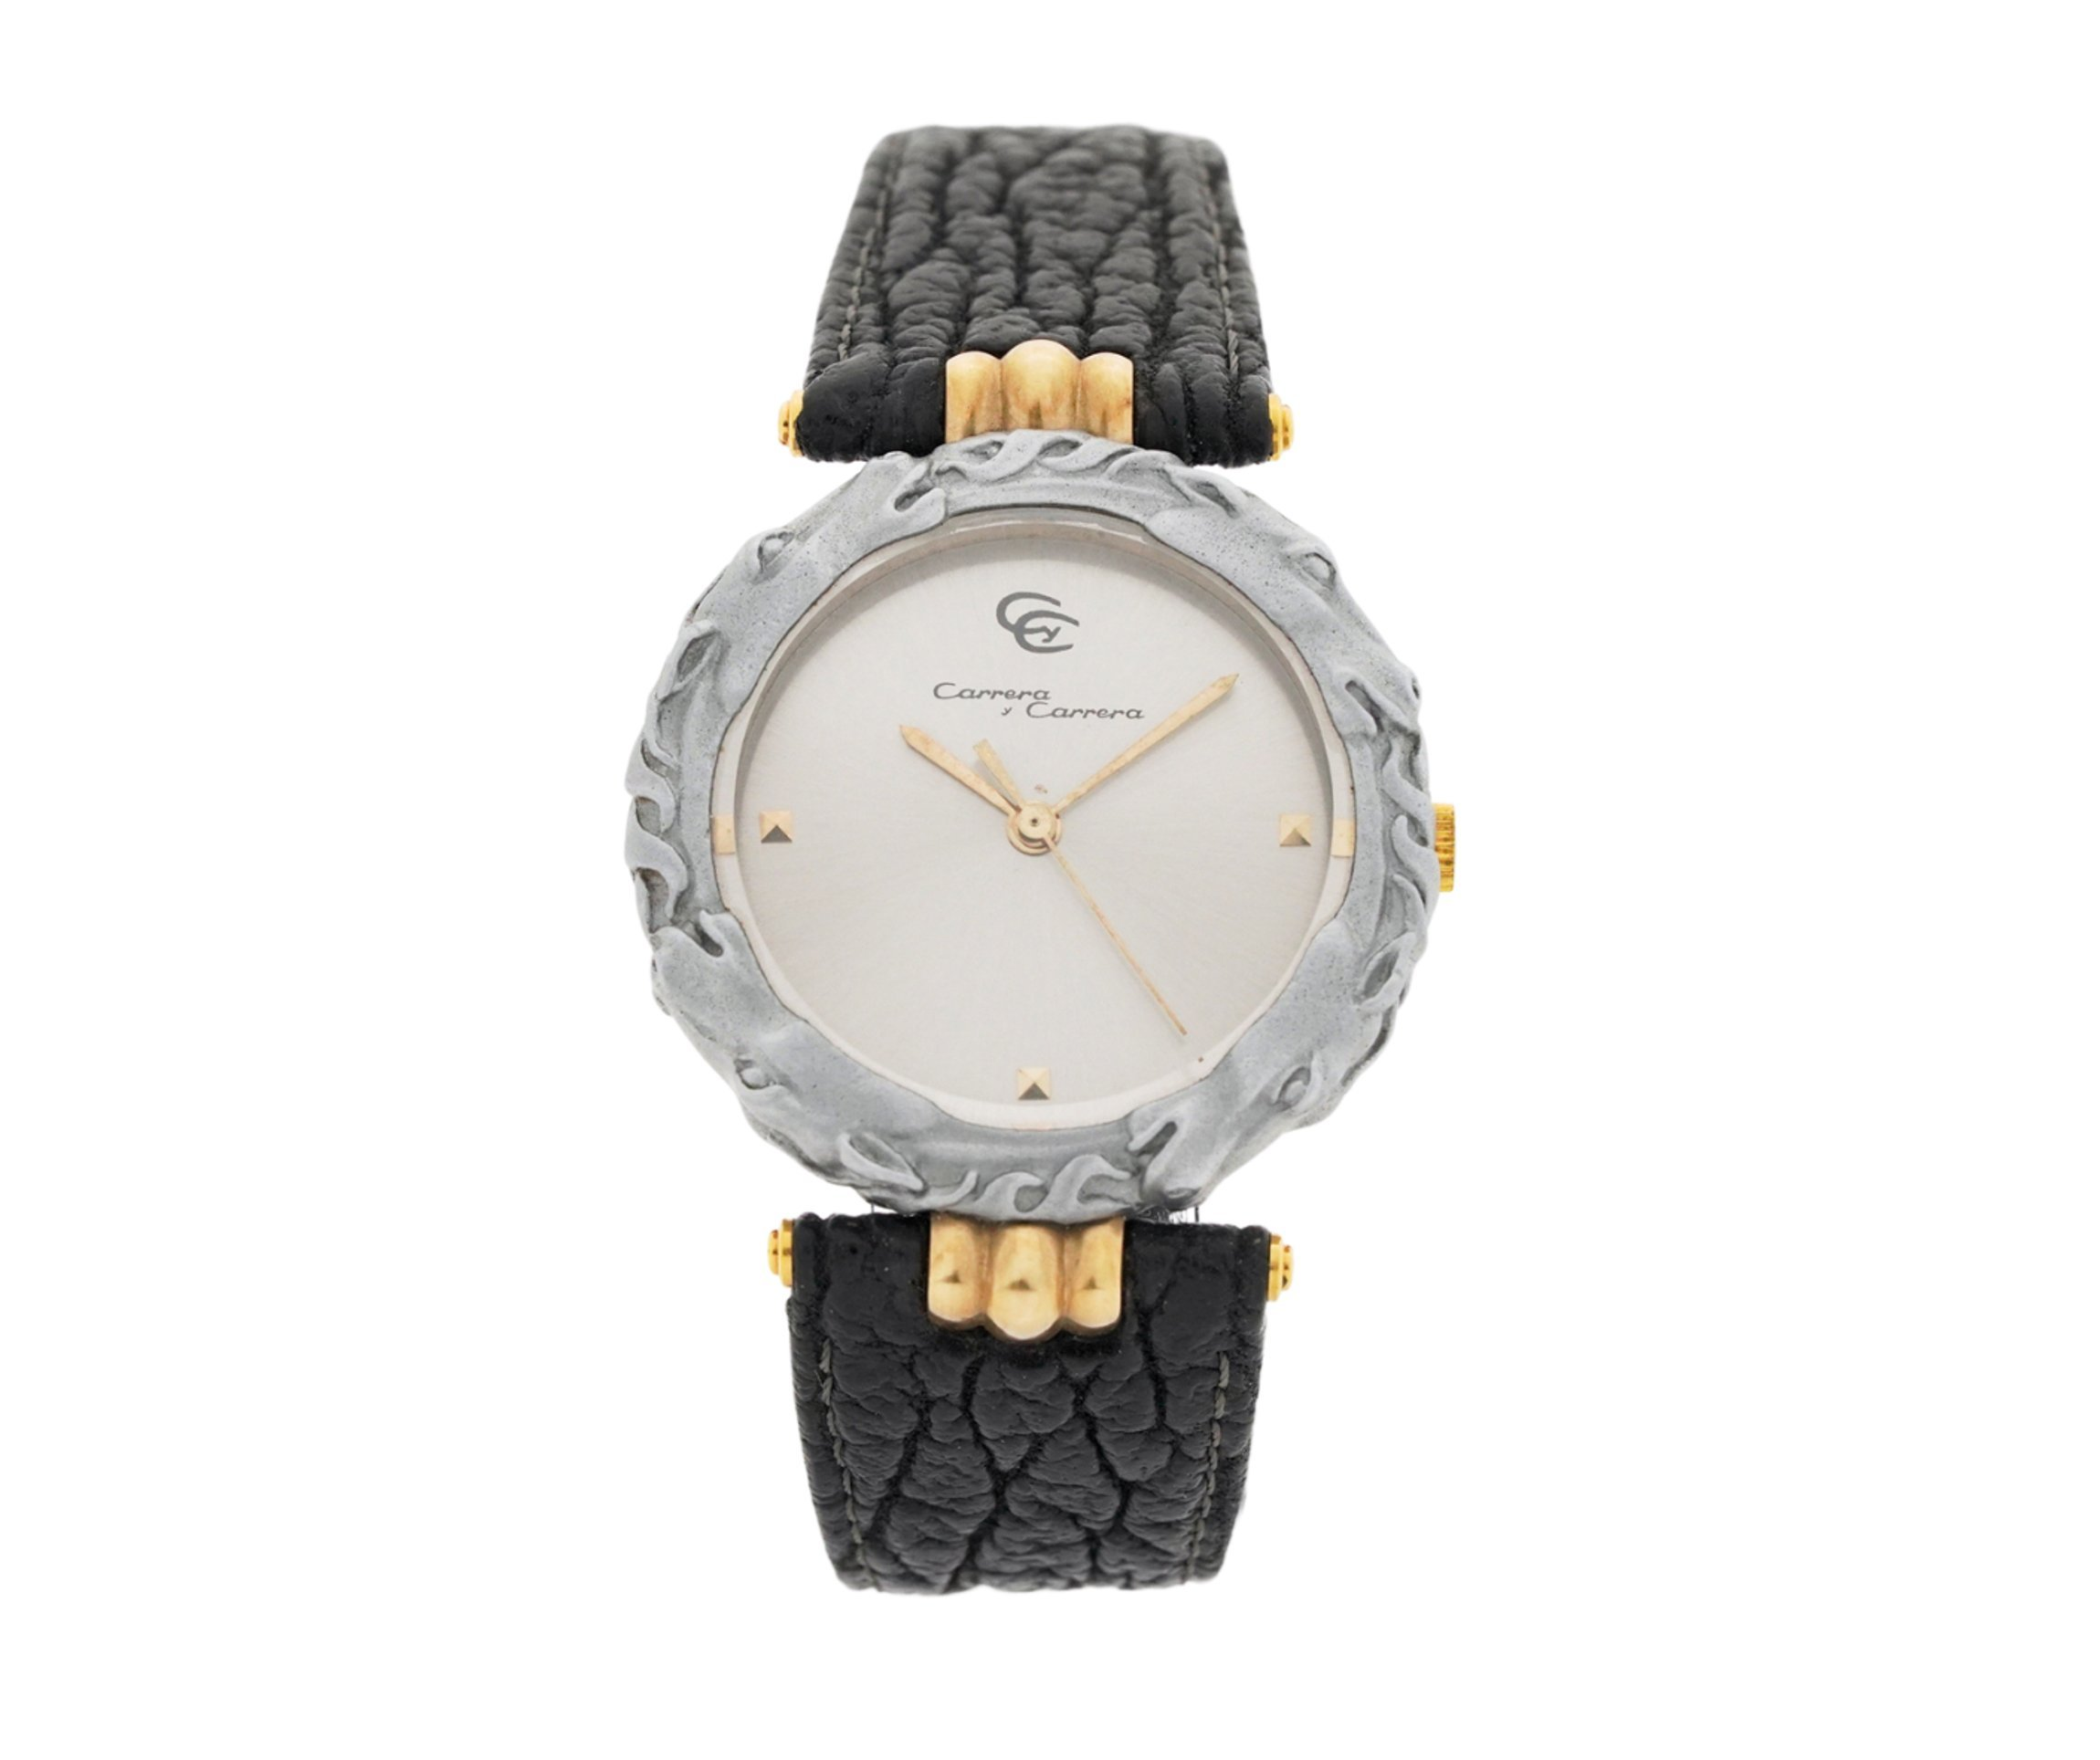 Ladies Carrera Y Carrera Kabajo Sculpted Titanium Horse & 18kt Yellow Gold Swiss Quartz Wrist Watch